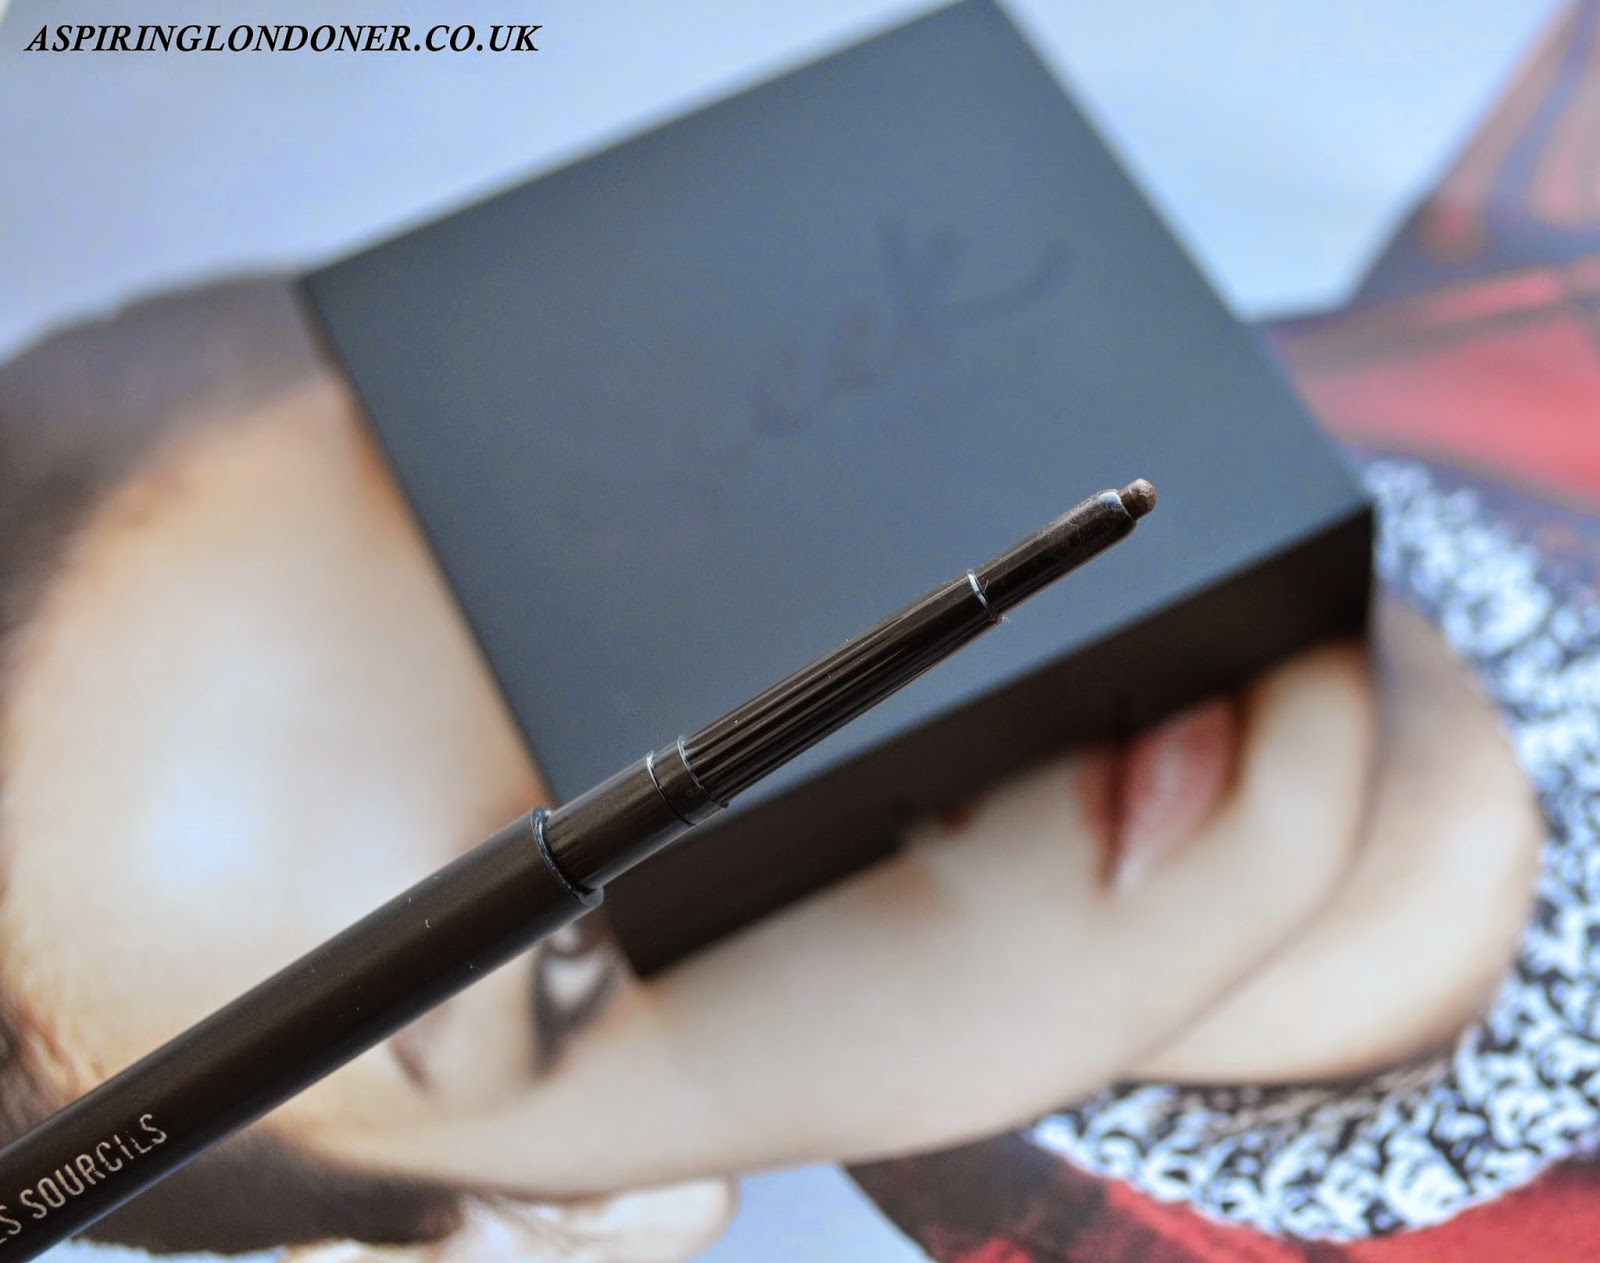 MAC Eyebrow Pencil in Spiked Review - Aspiring Londoner